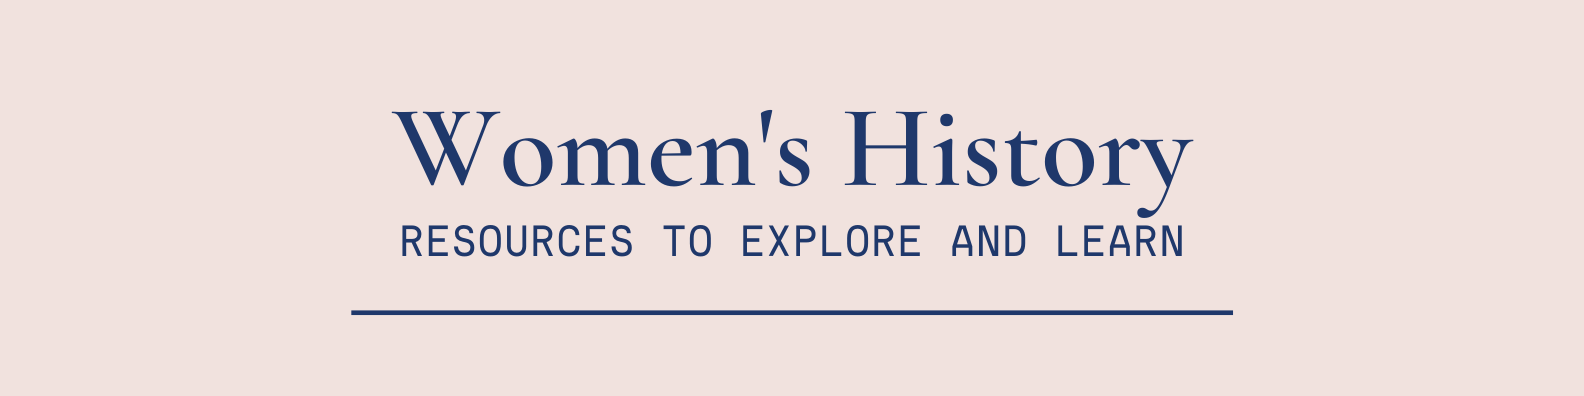 Women's History: Resources to Explore and Learn